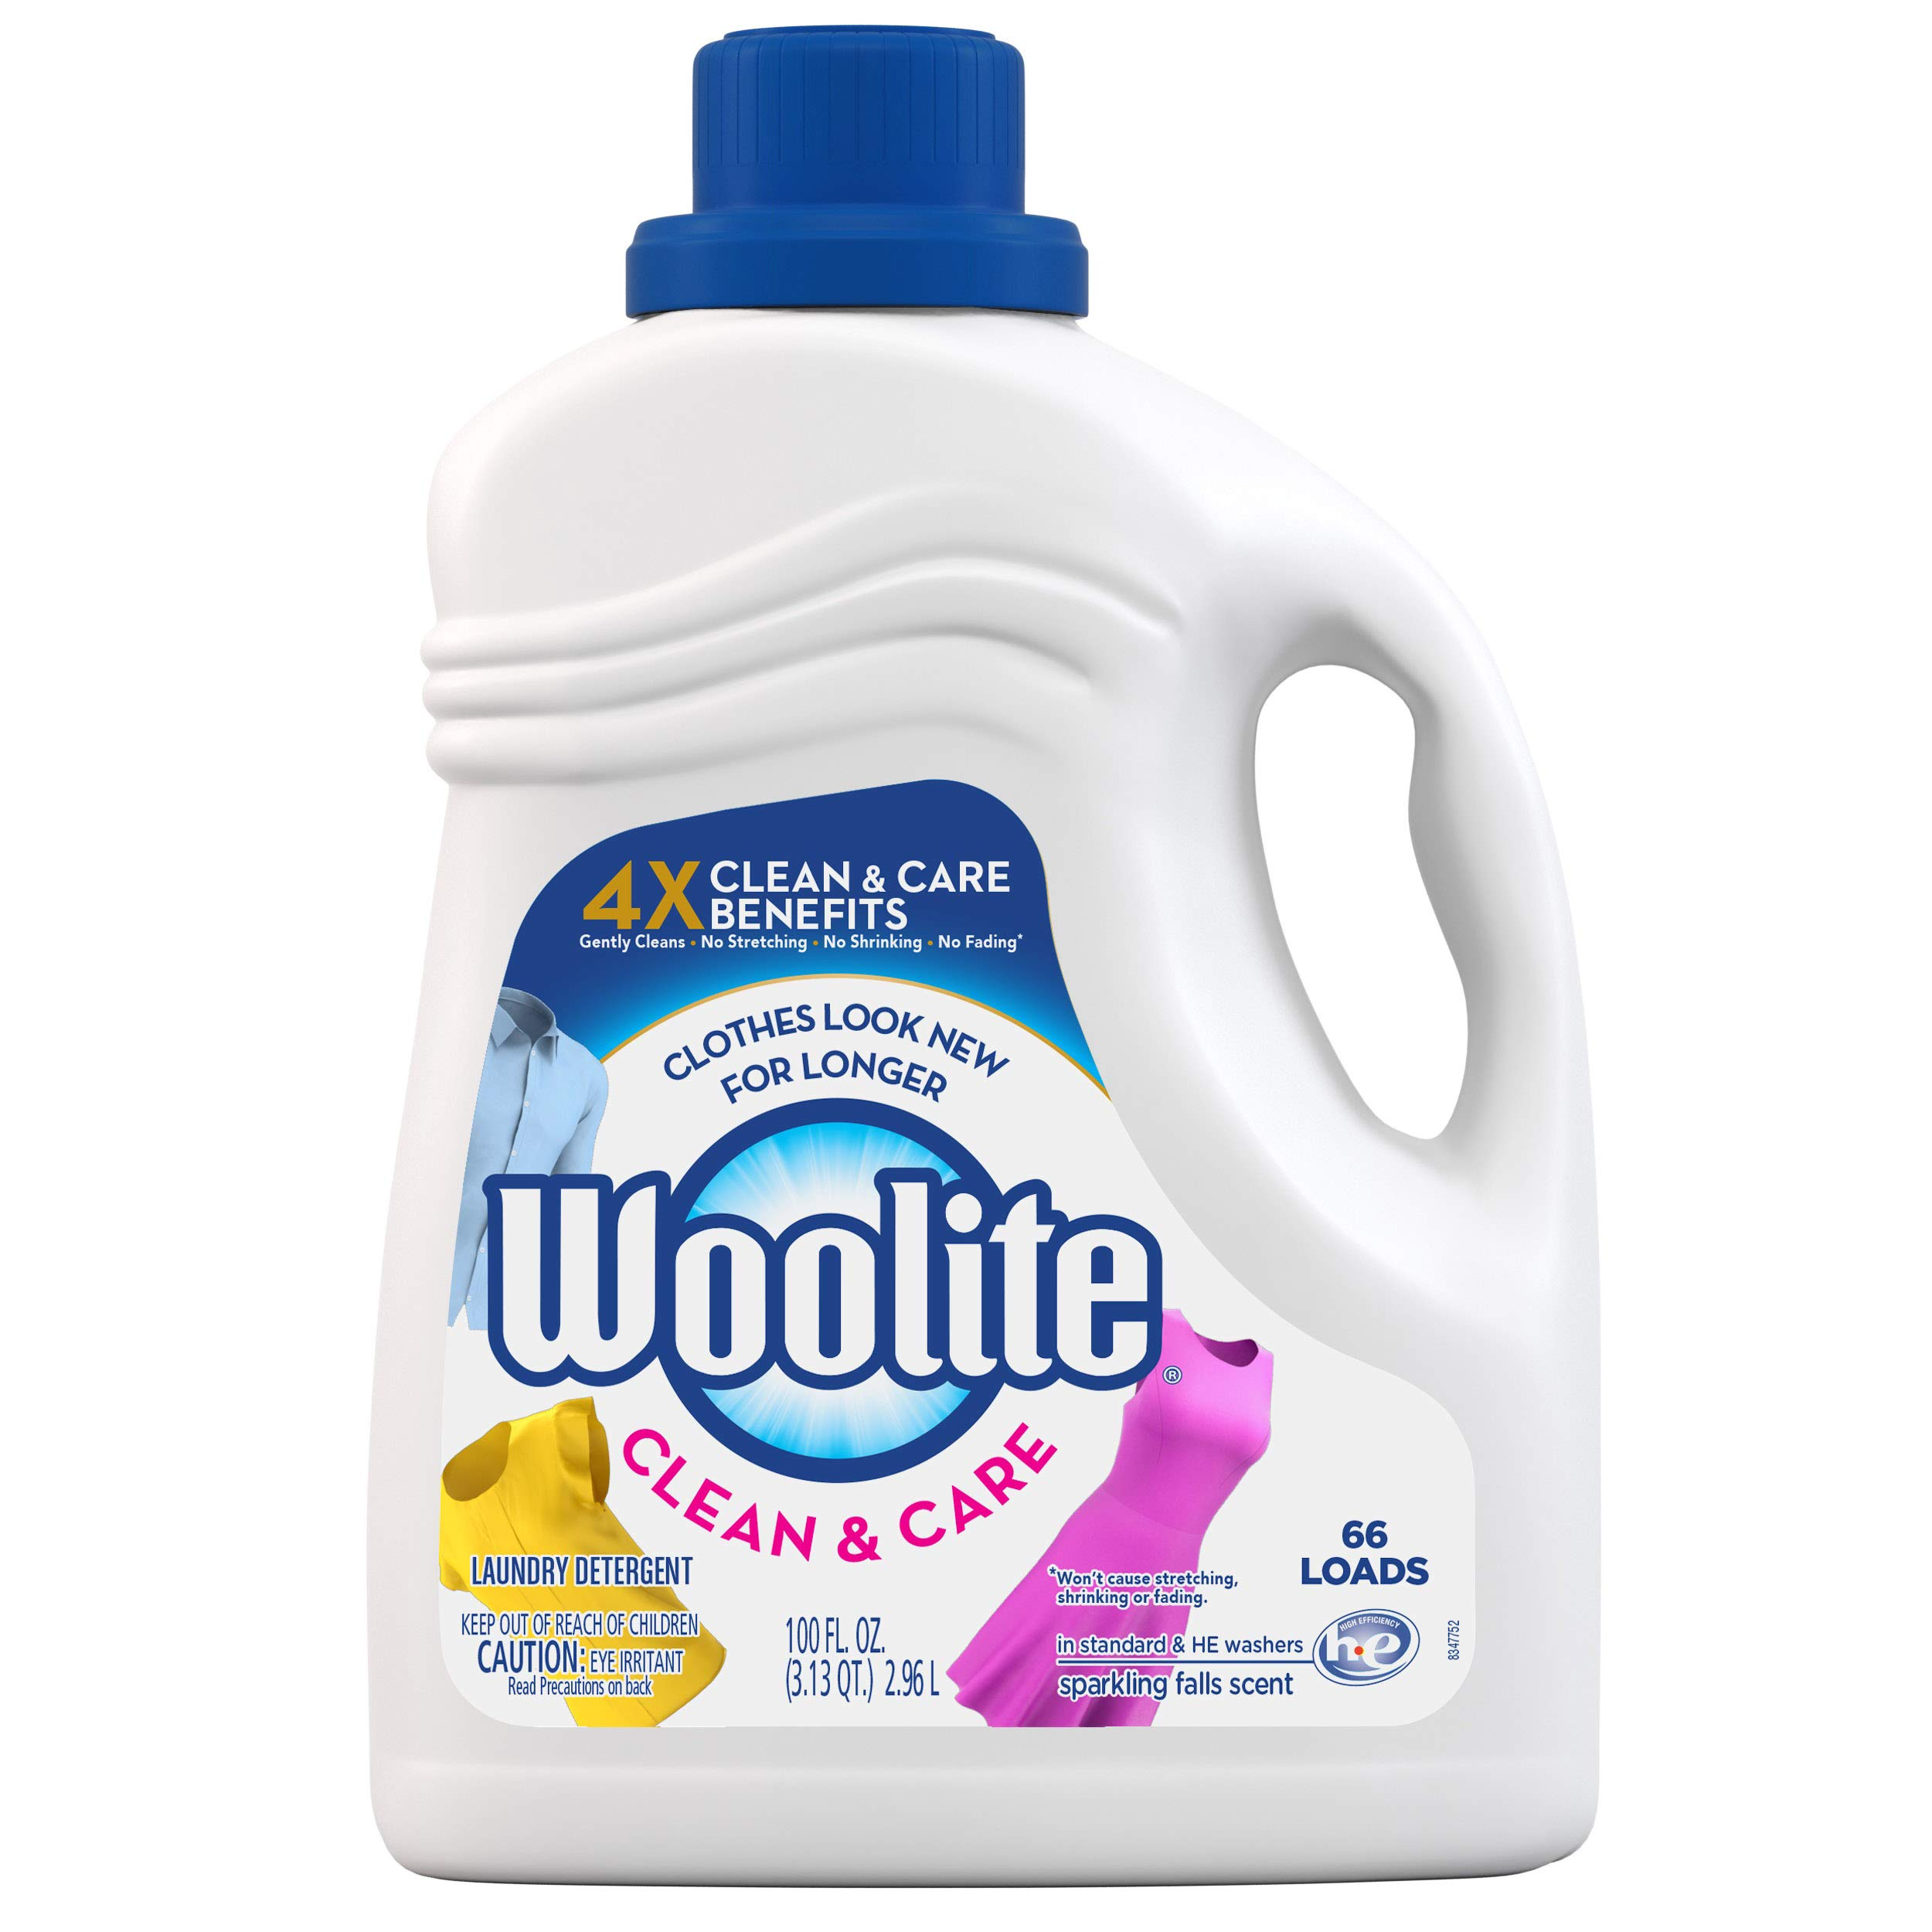 Woolite Clean & Care Liquid Laundry Detergent, 66 Loads, 100oz, Regular & HE Washers, Gentle Cycle, sparkling falls scent, packaging may vary by Woolite